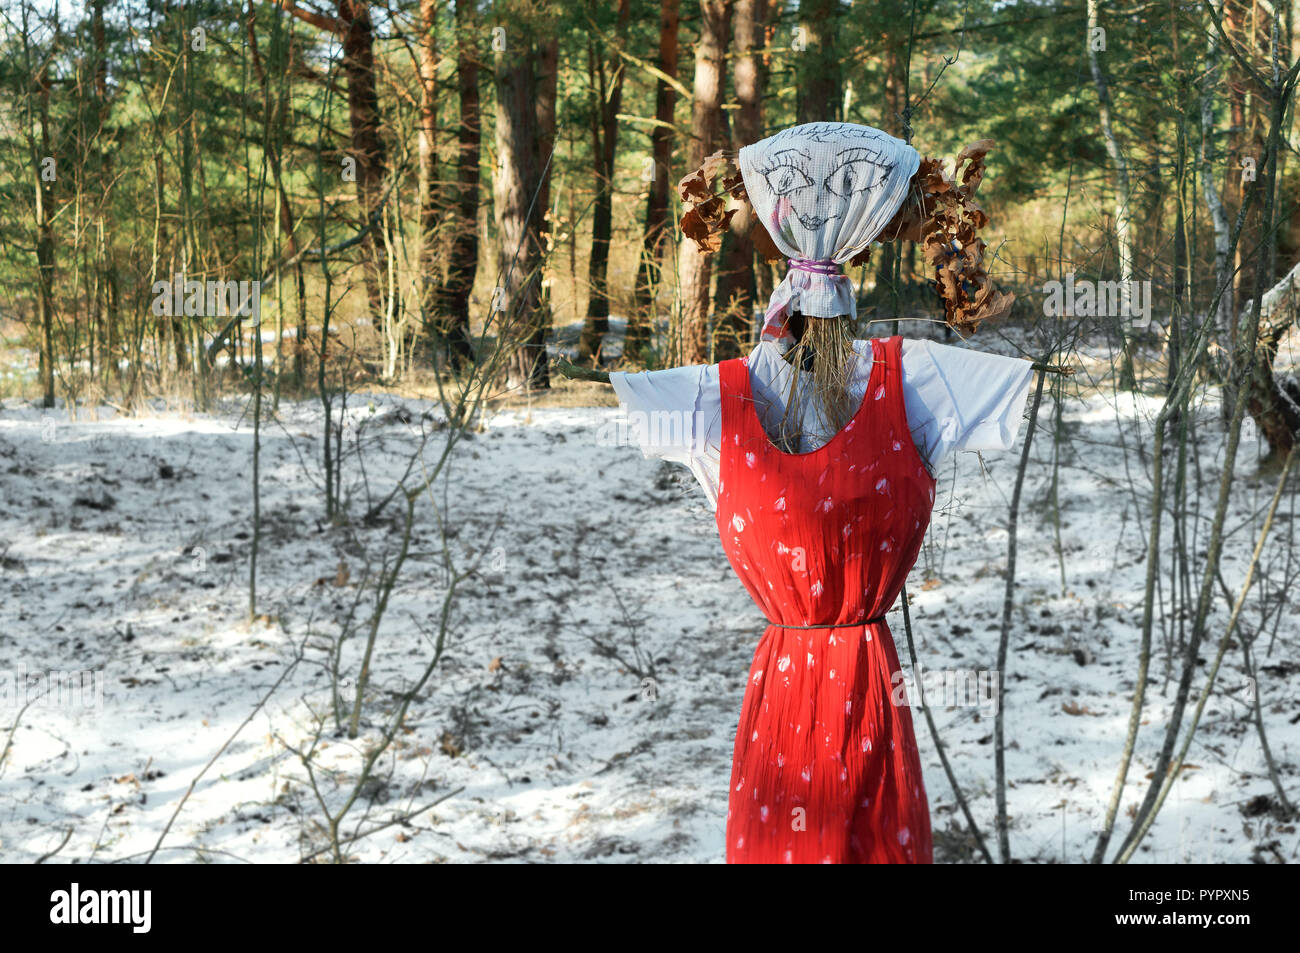 18 February 2018, Kaliningrad, Russia, Maslenitsa festival in the forest, stuffed winter in a red sundress - Stock Image